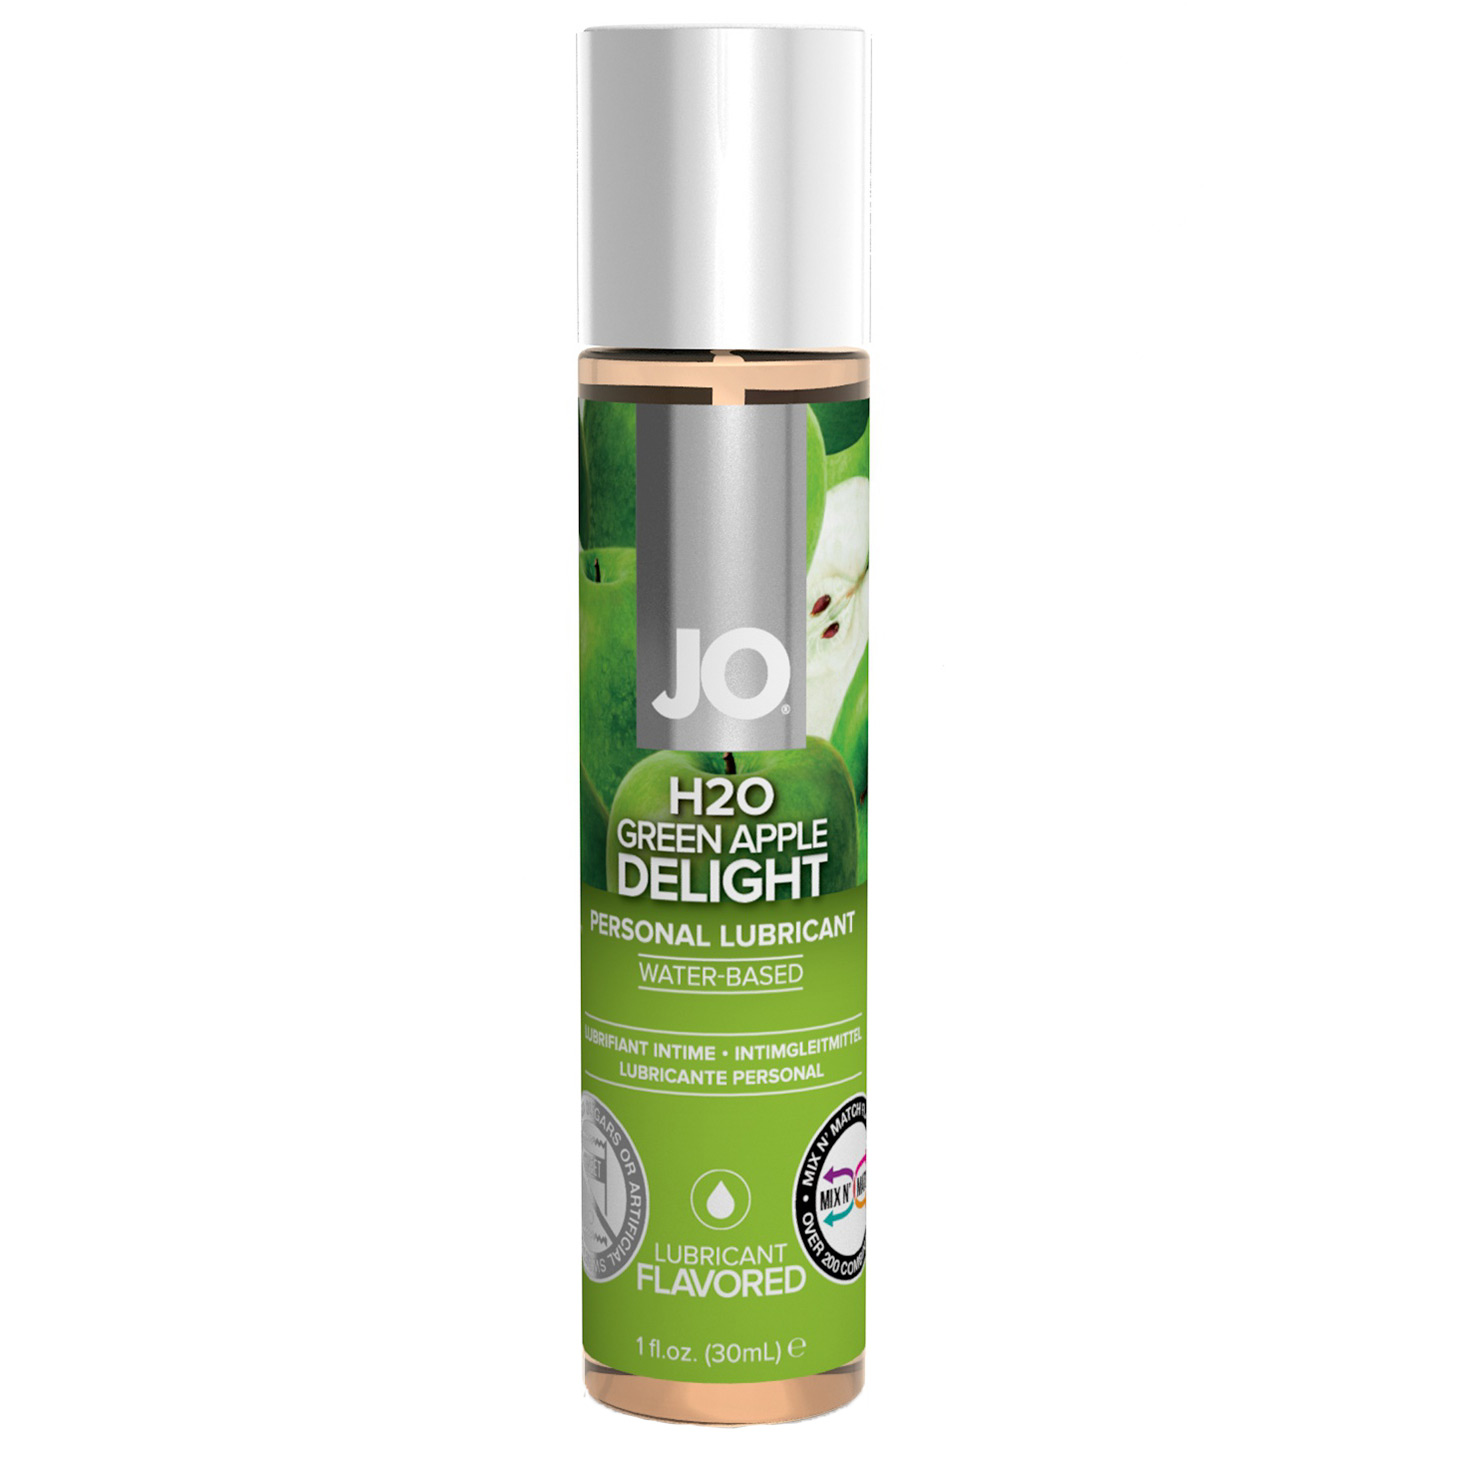 Jo H20 Green Apple 30ml